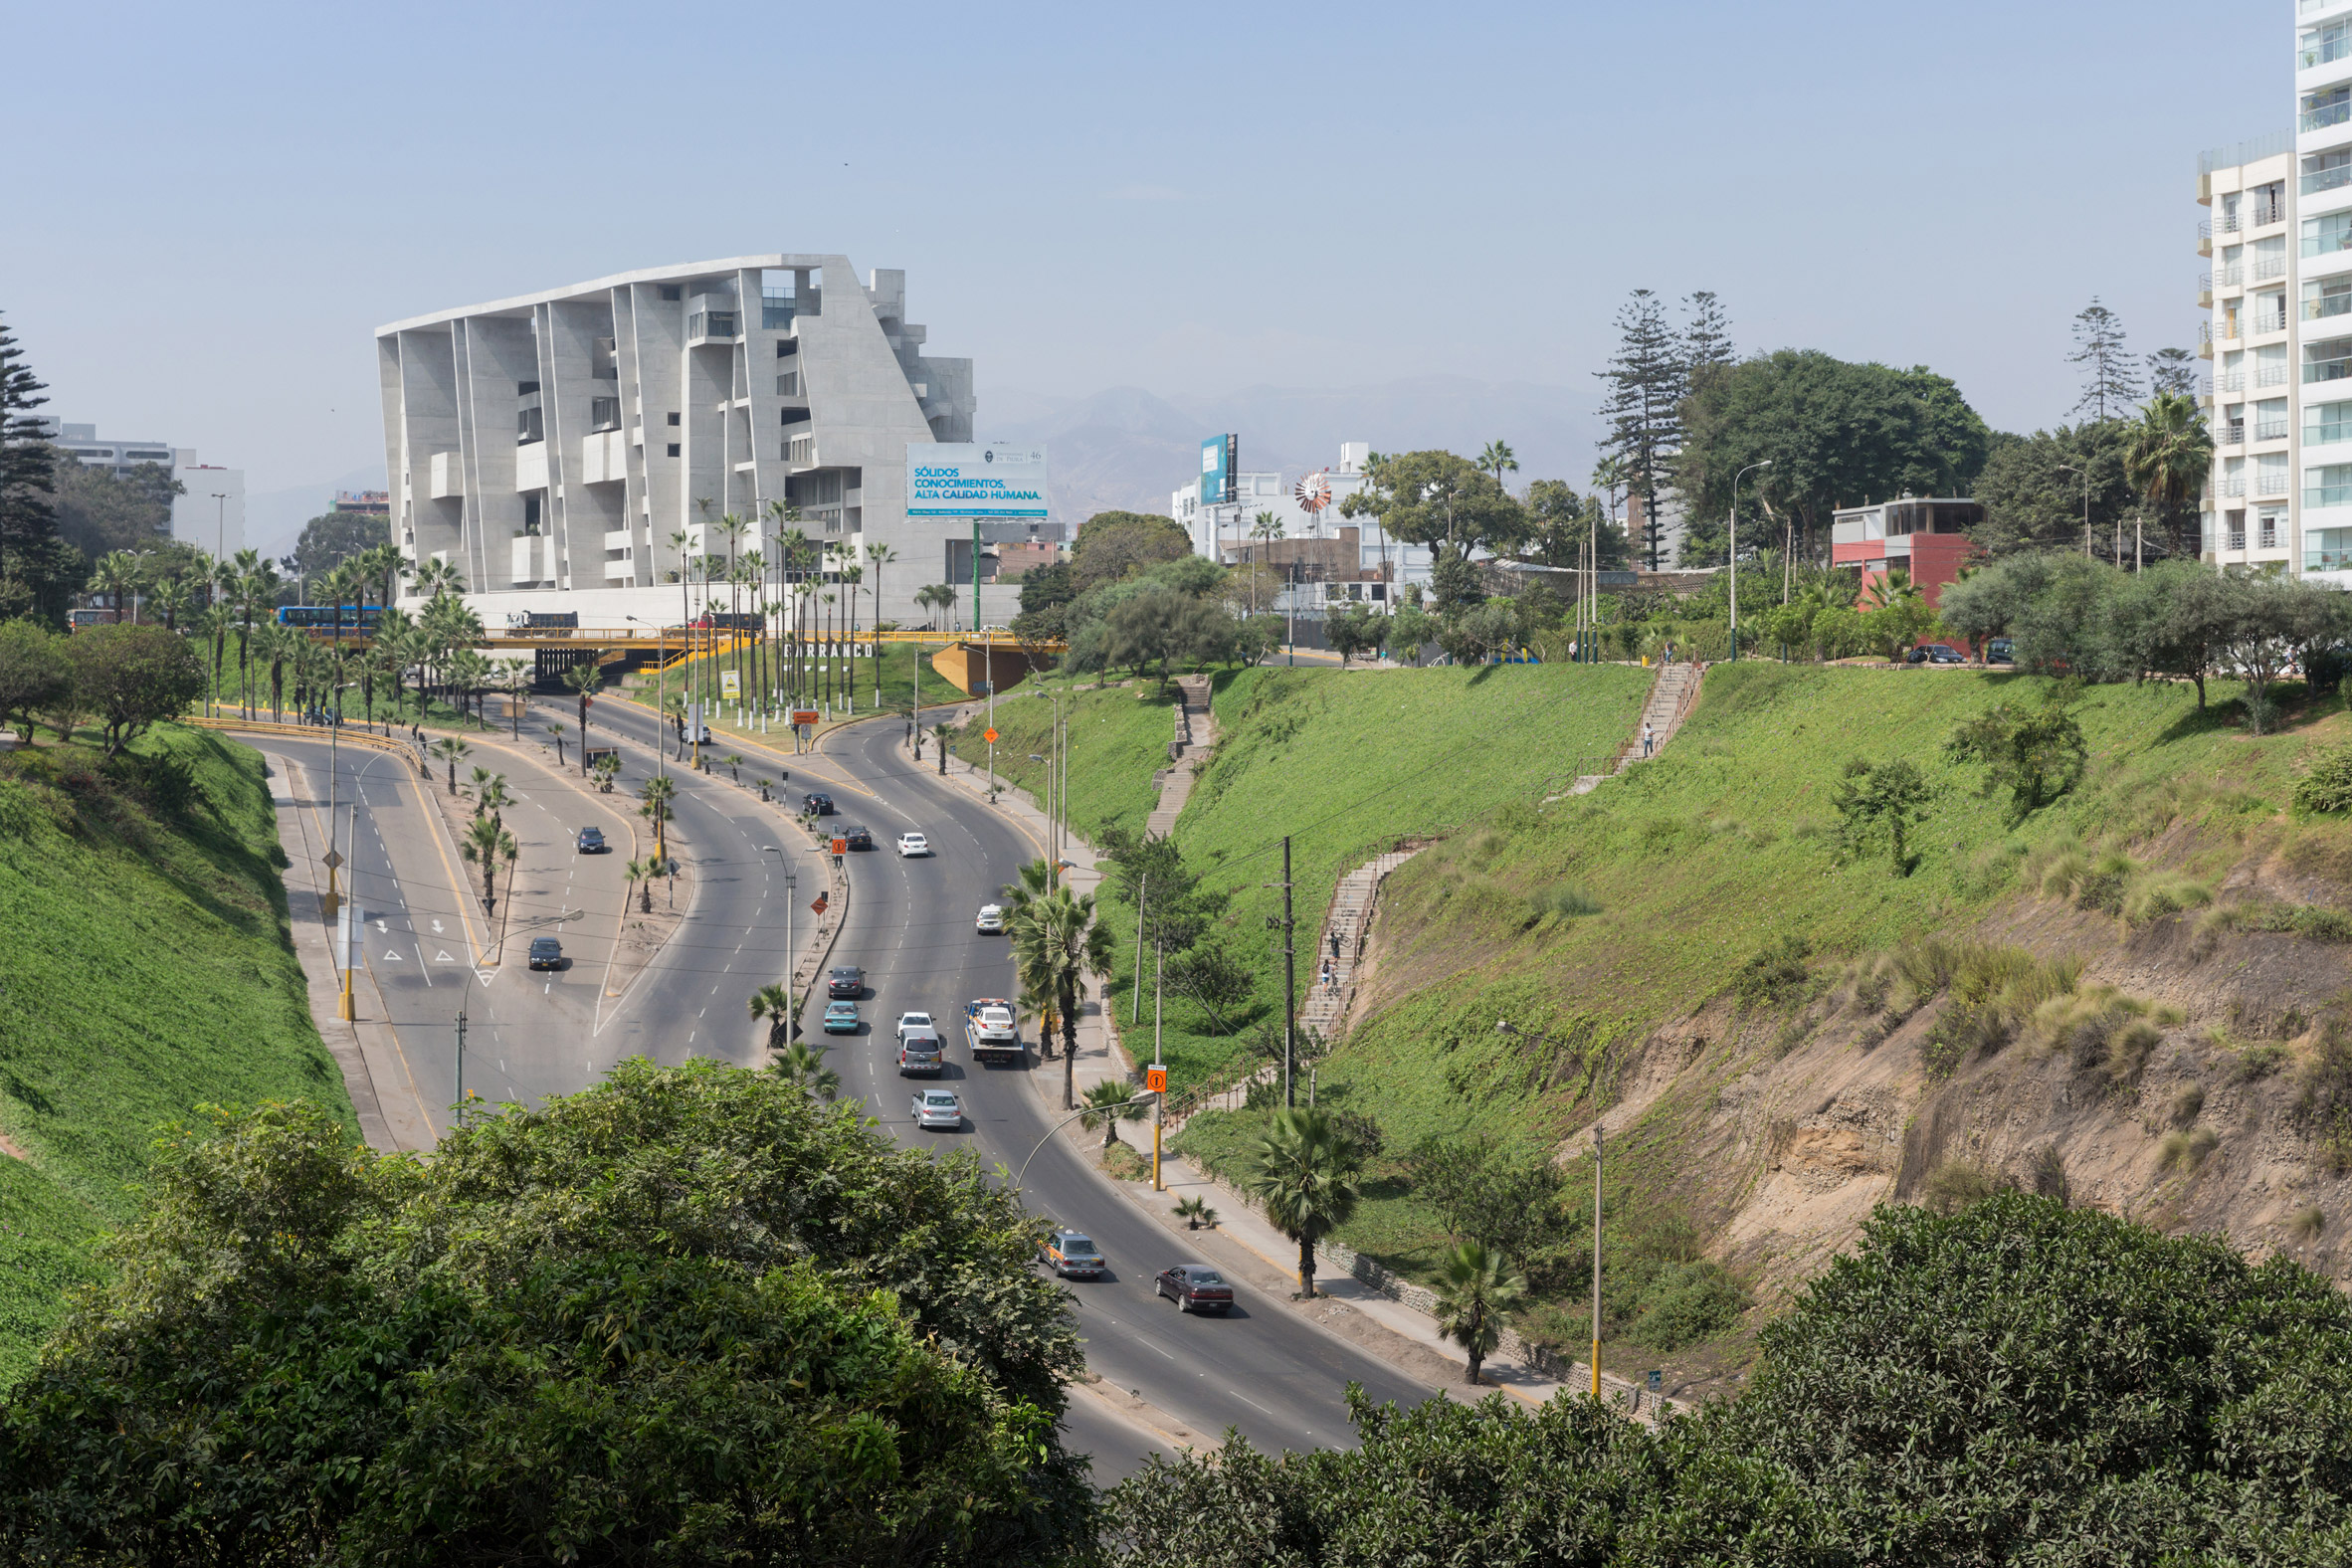 Grafton Architects wins inaugural RIBA International Prize for university campus in Peru